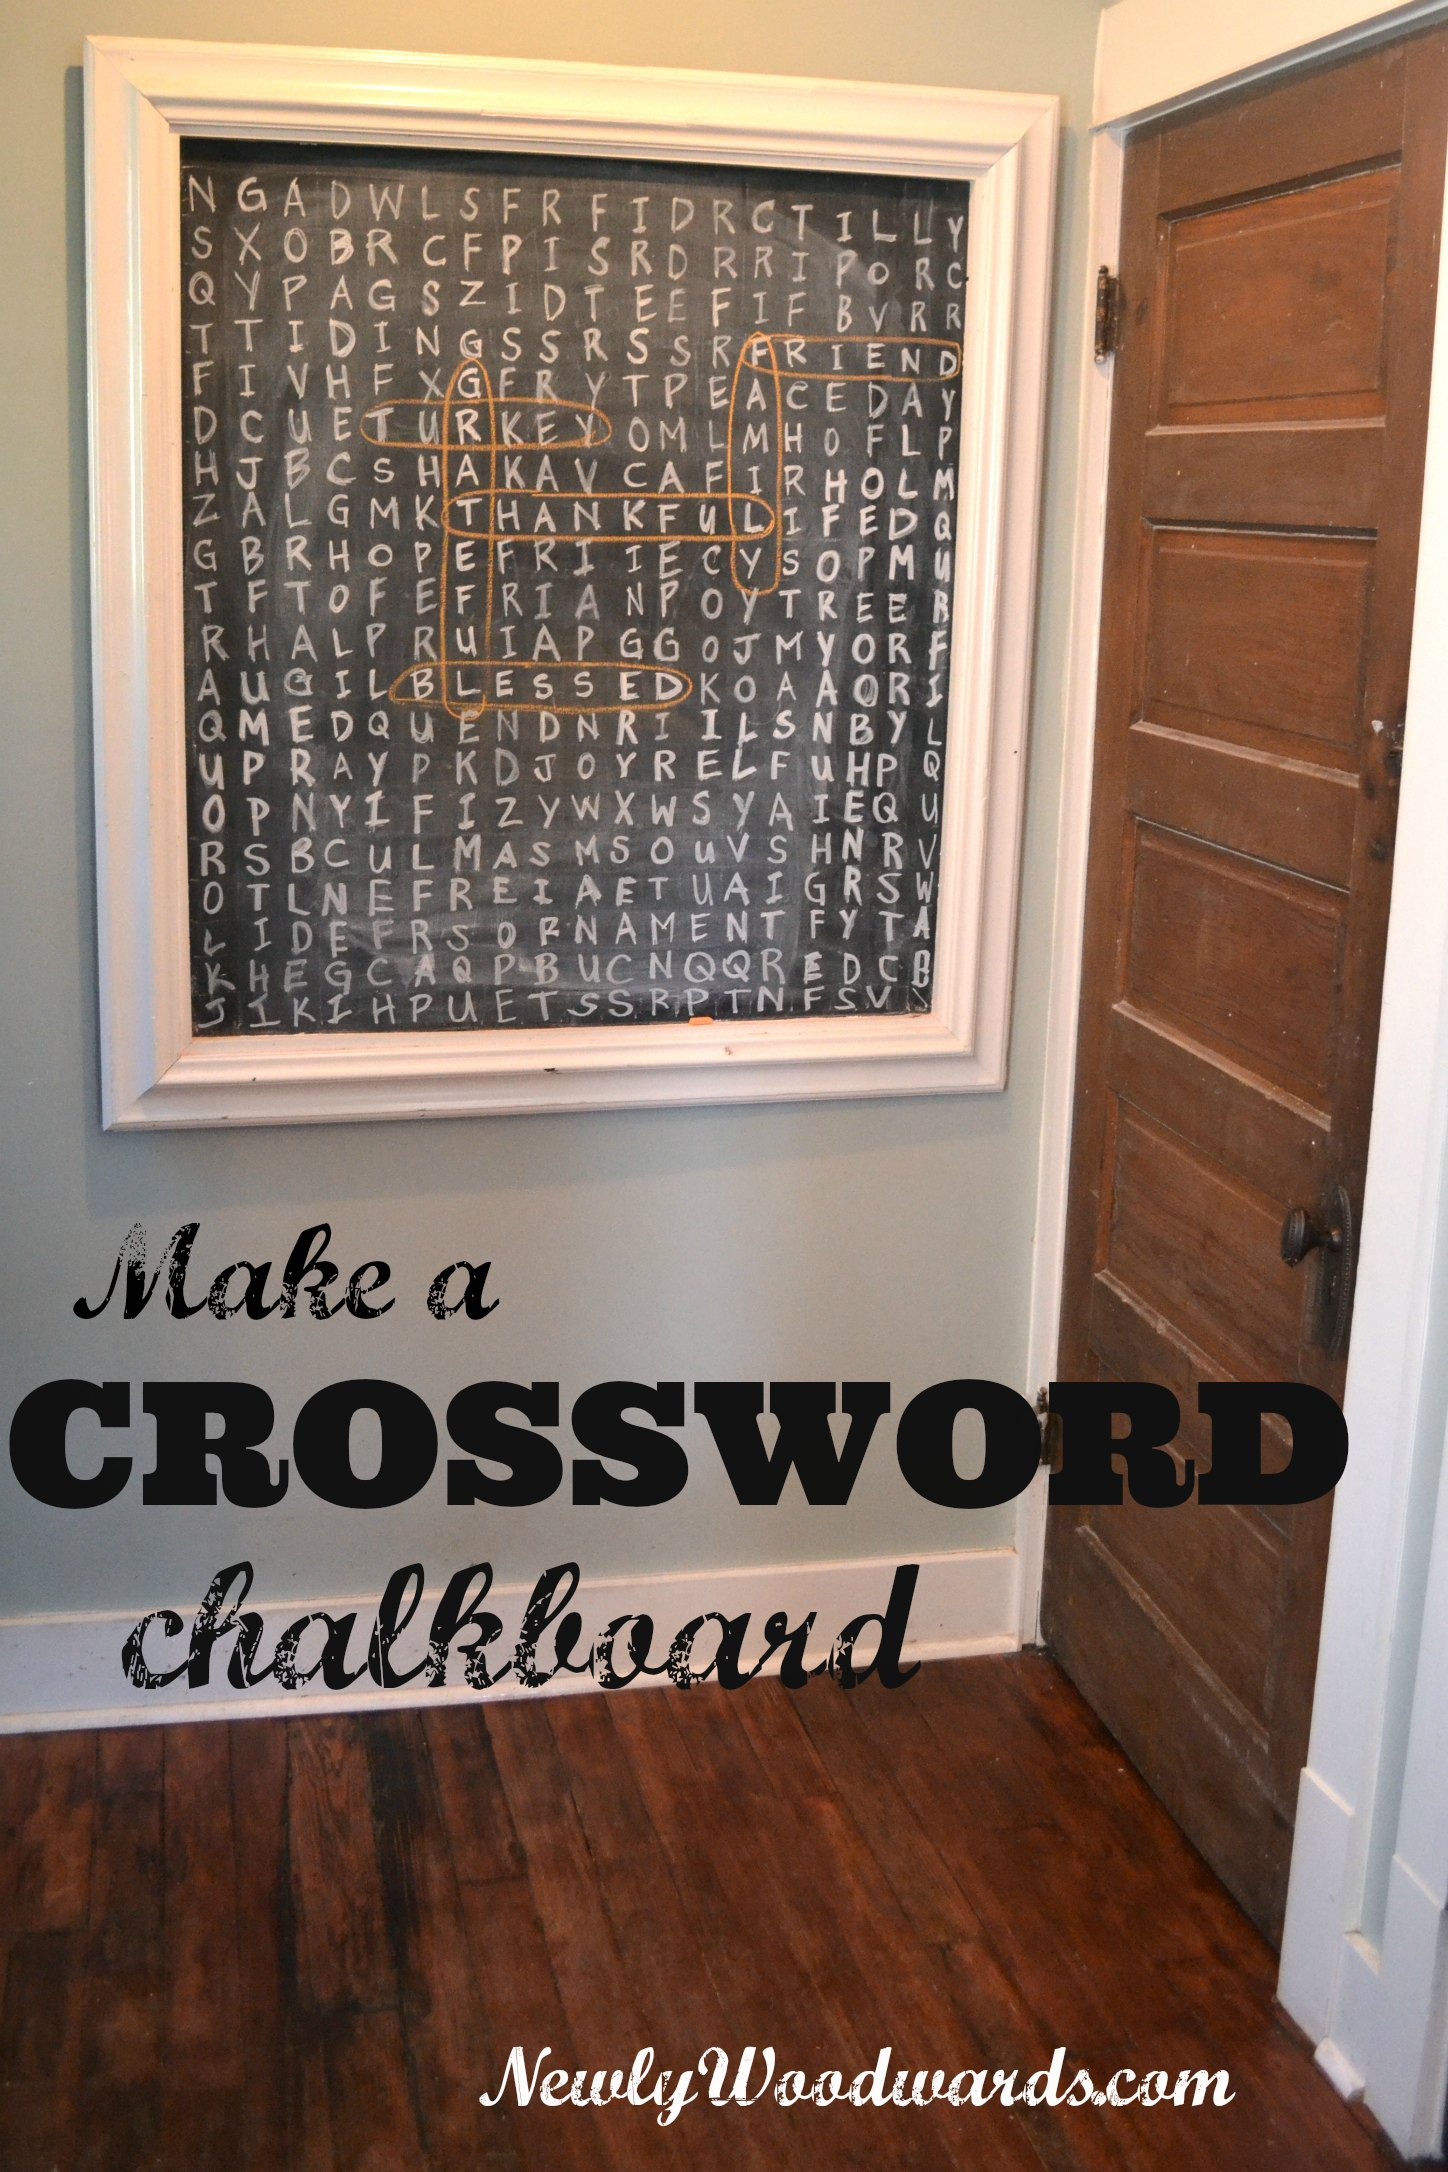 Thanksgiving crossword chalkboard